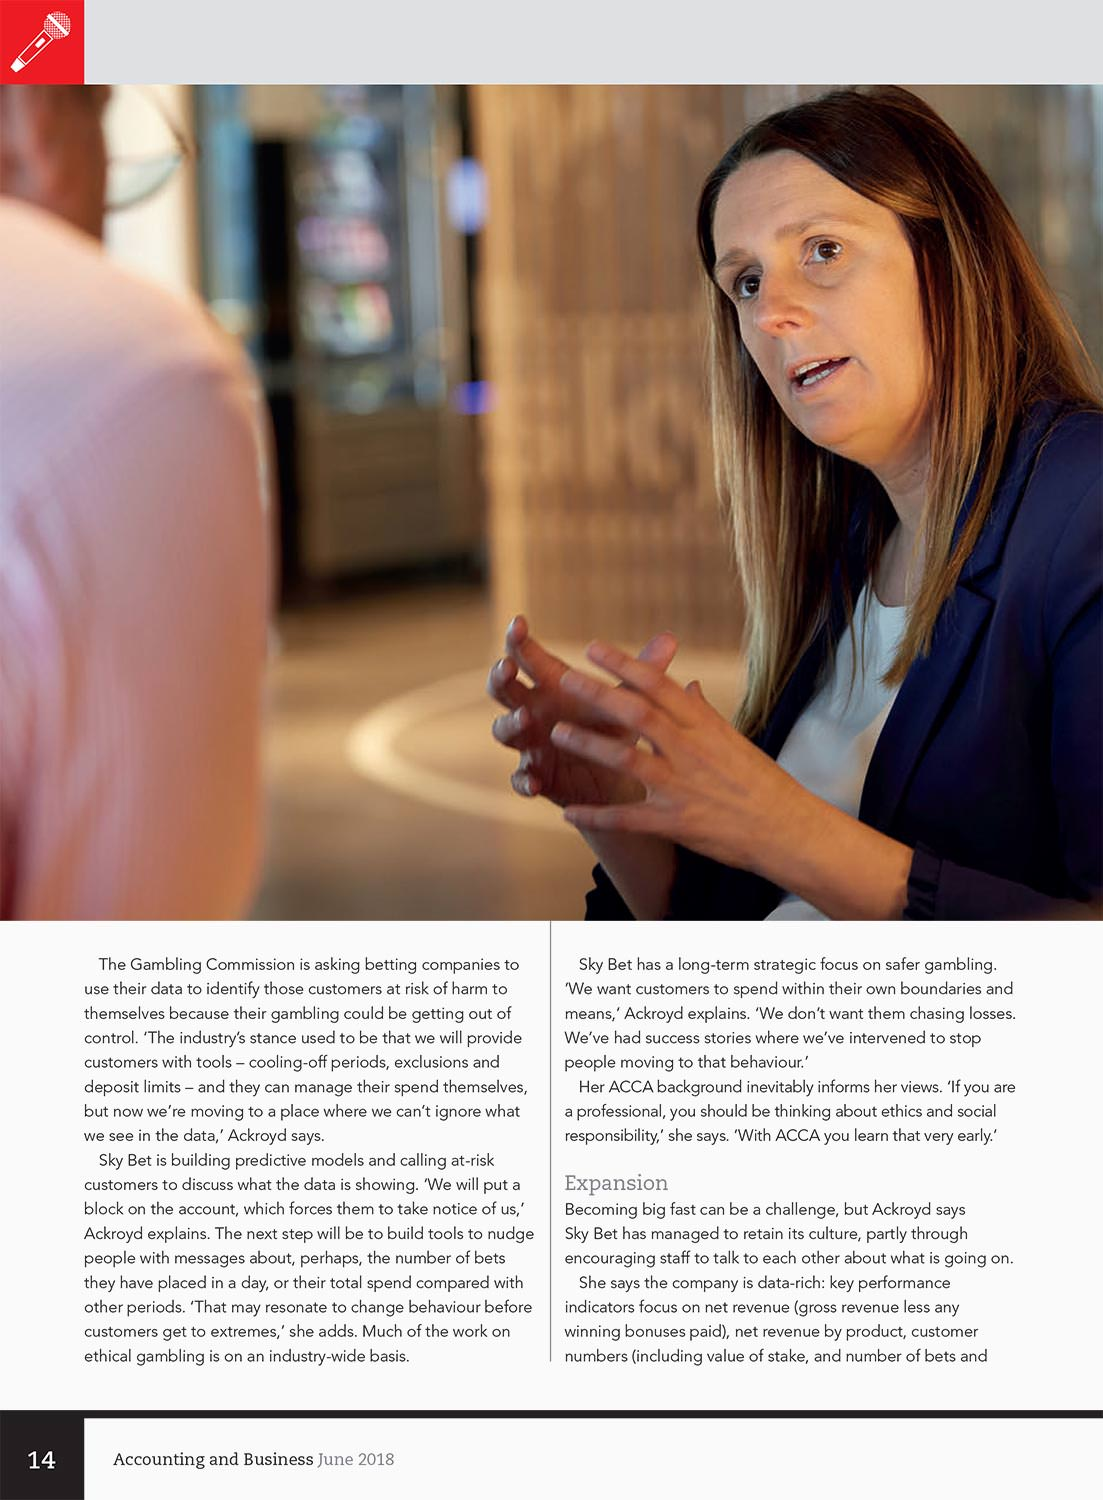 caroline-ackroyd-for-accountancy-and-business-magazine-03.jpg